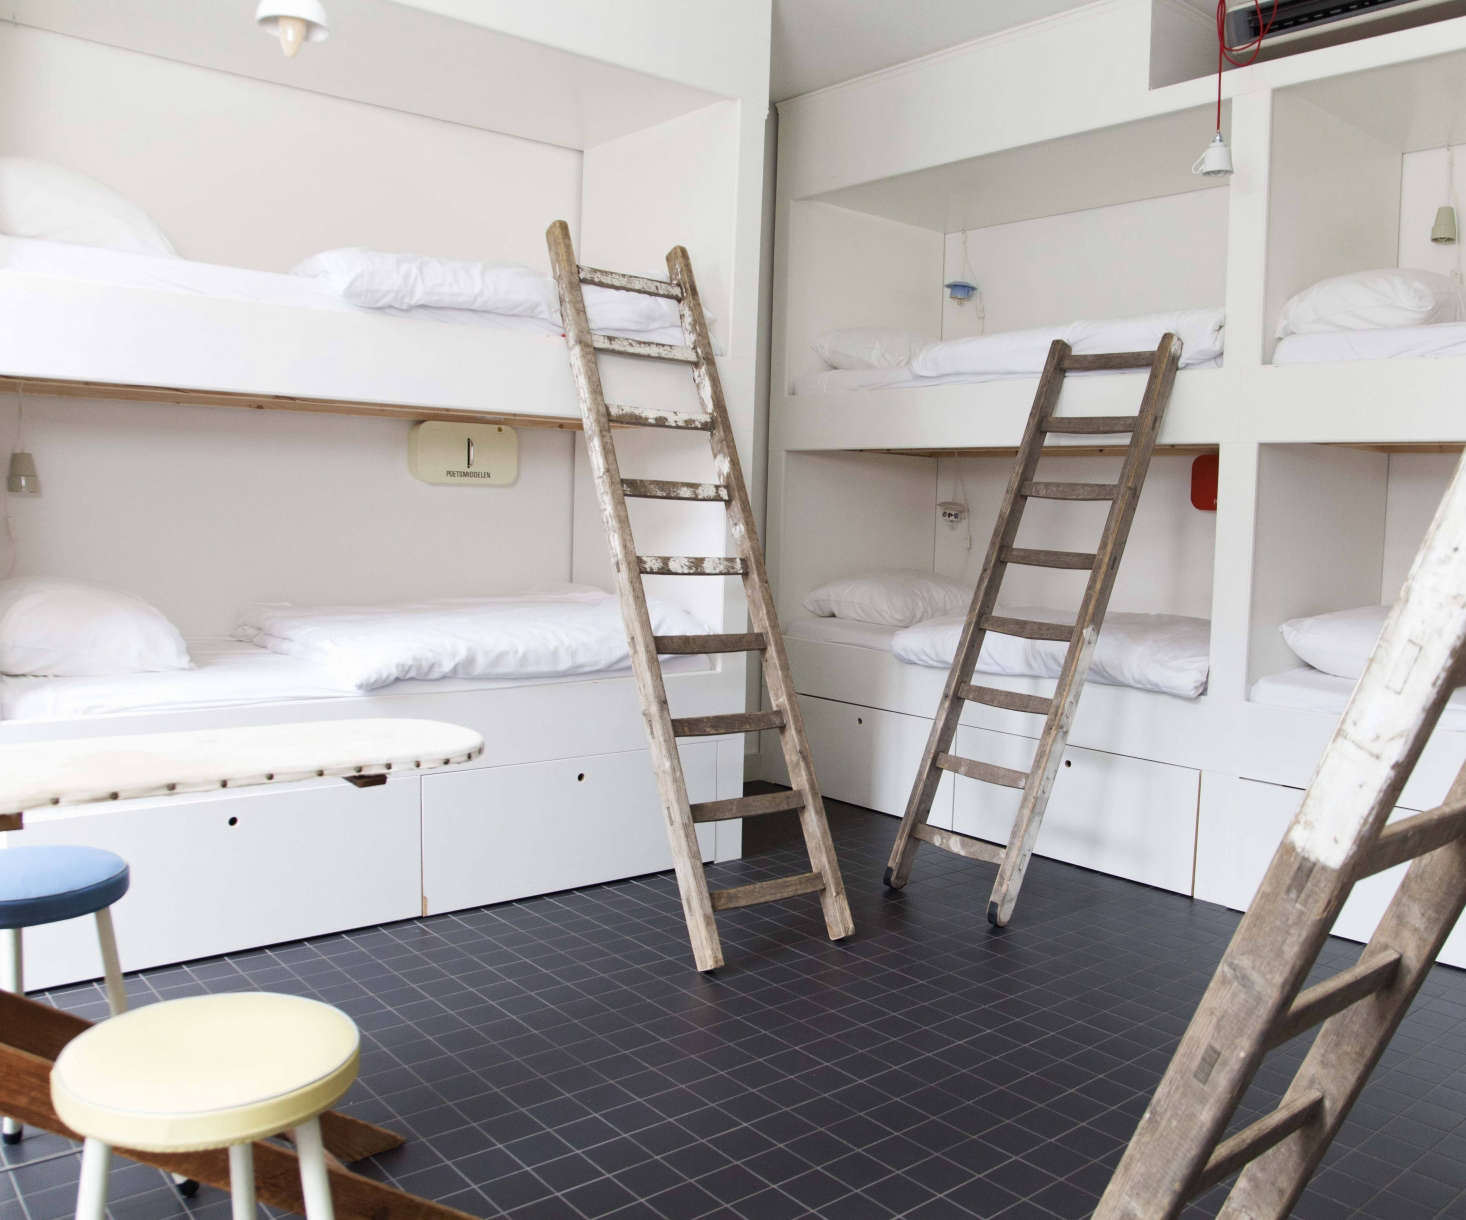 Designer Dorm Rooms Stylish Student Housing And Hostel Hotels In Europe